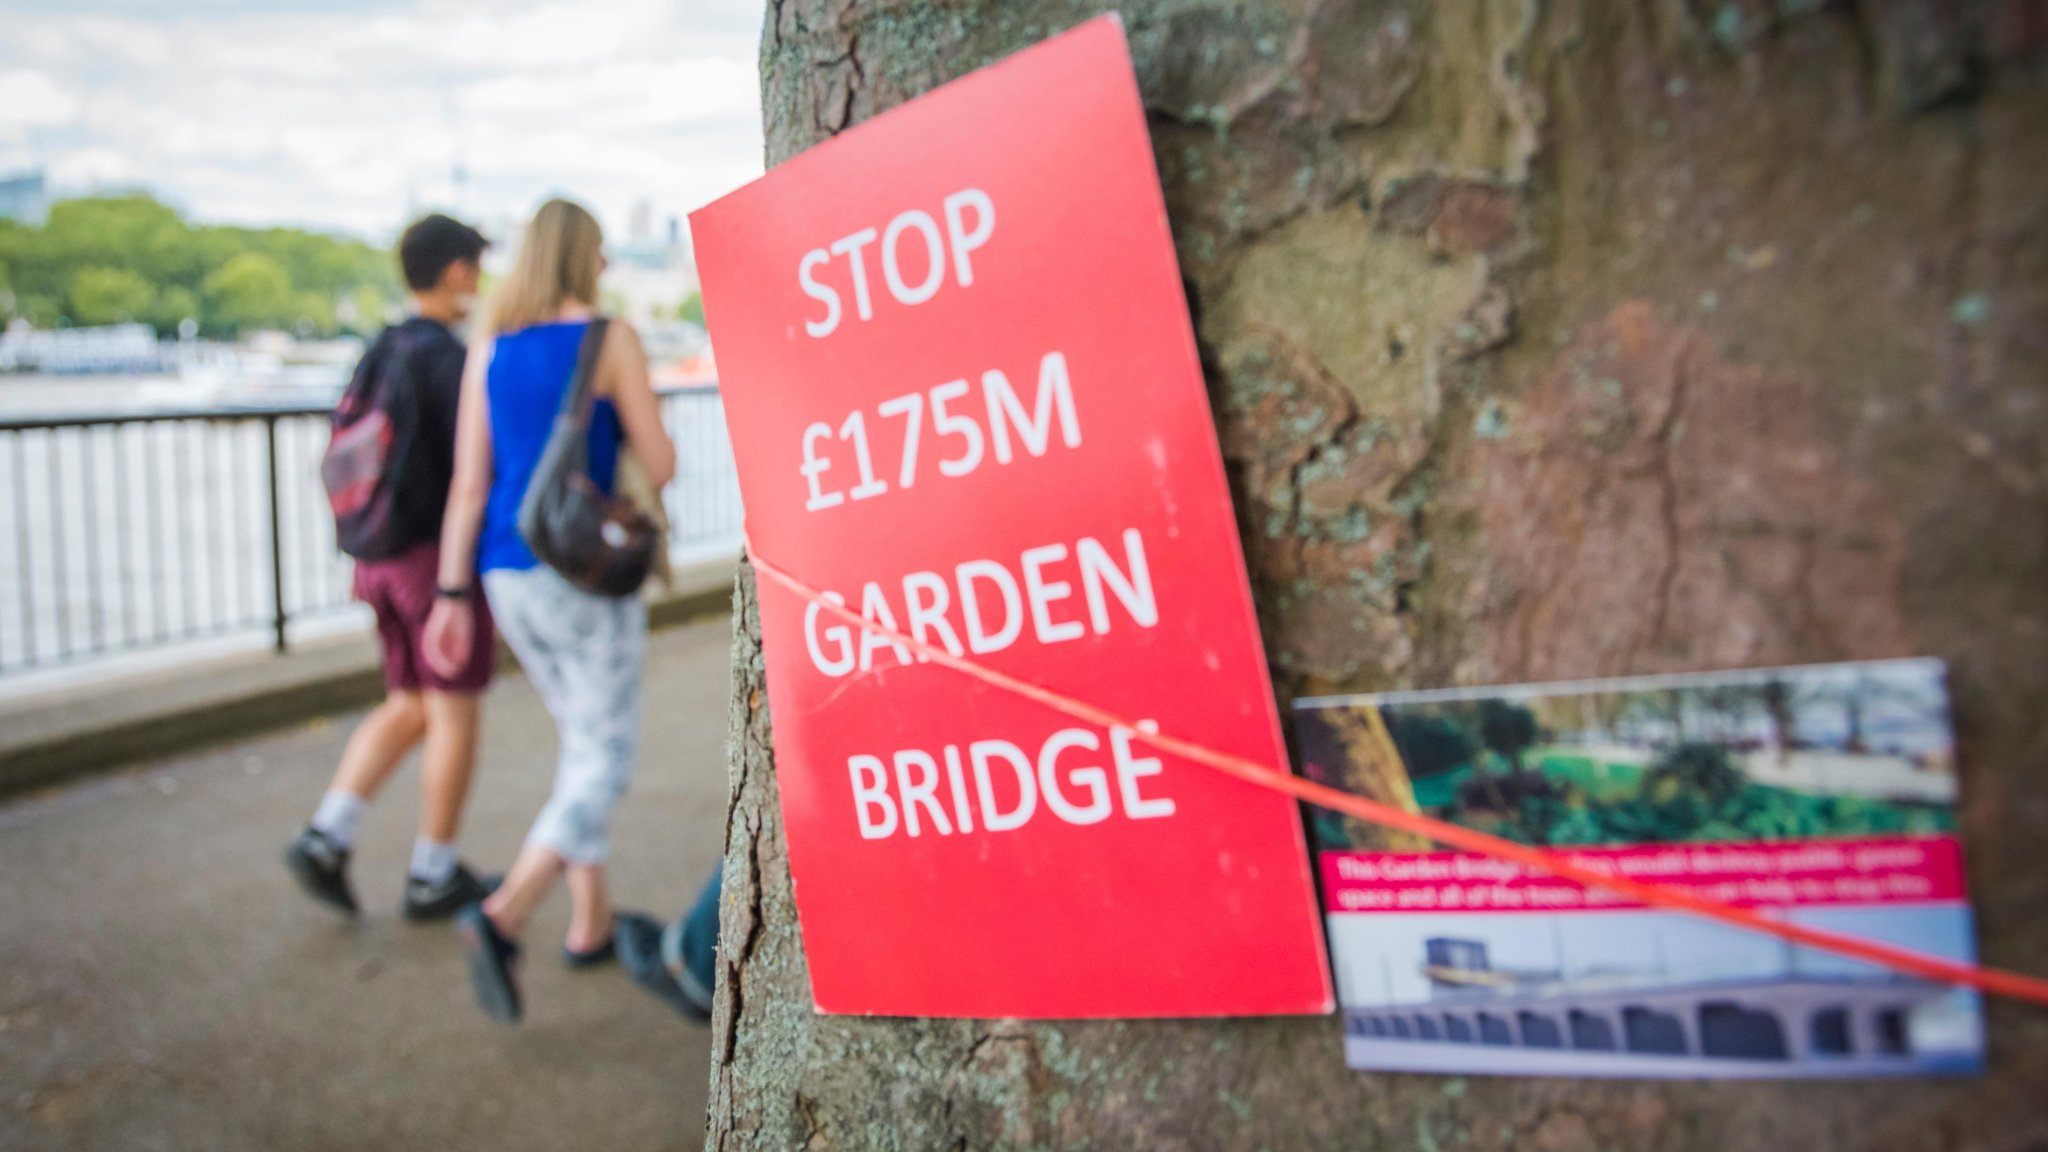 London Garden Bridge plans finally fall down